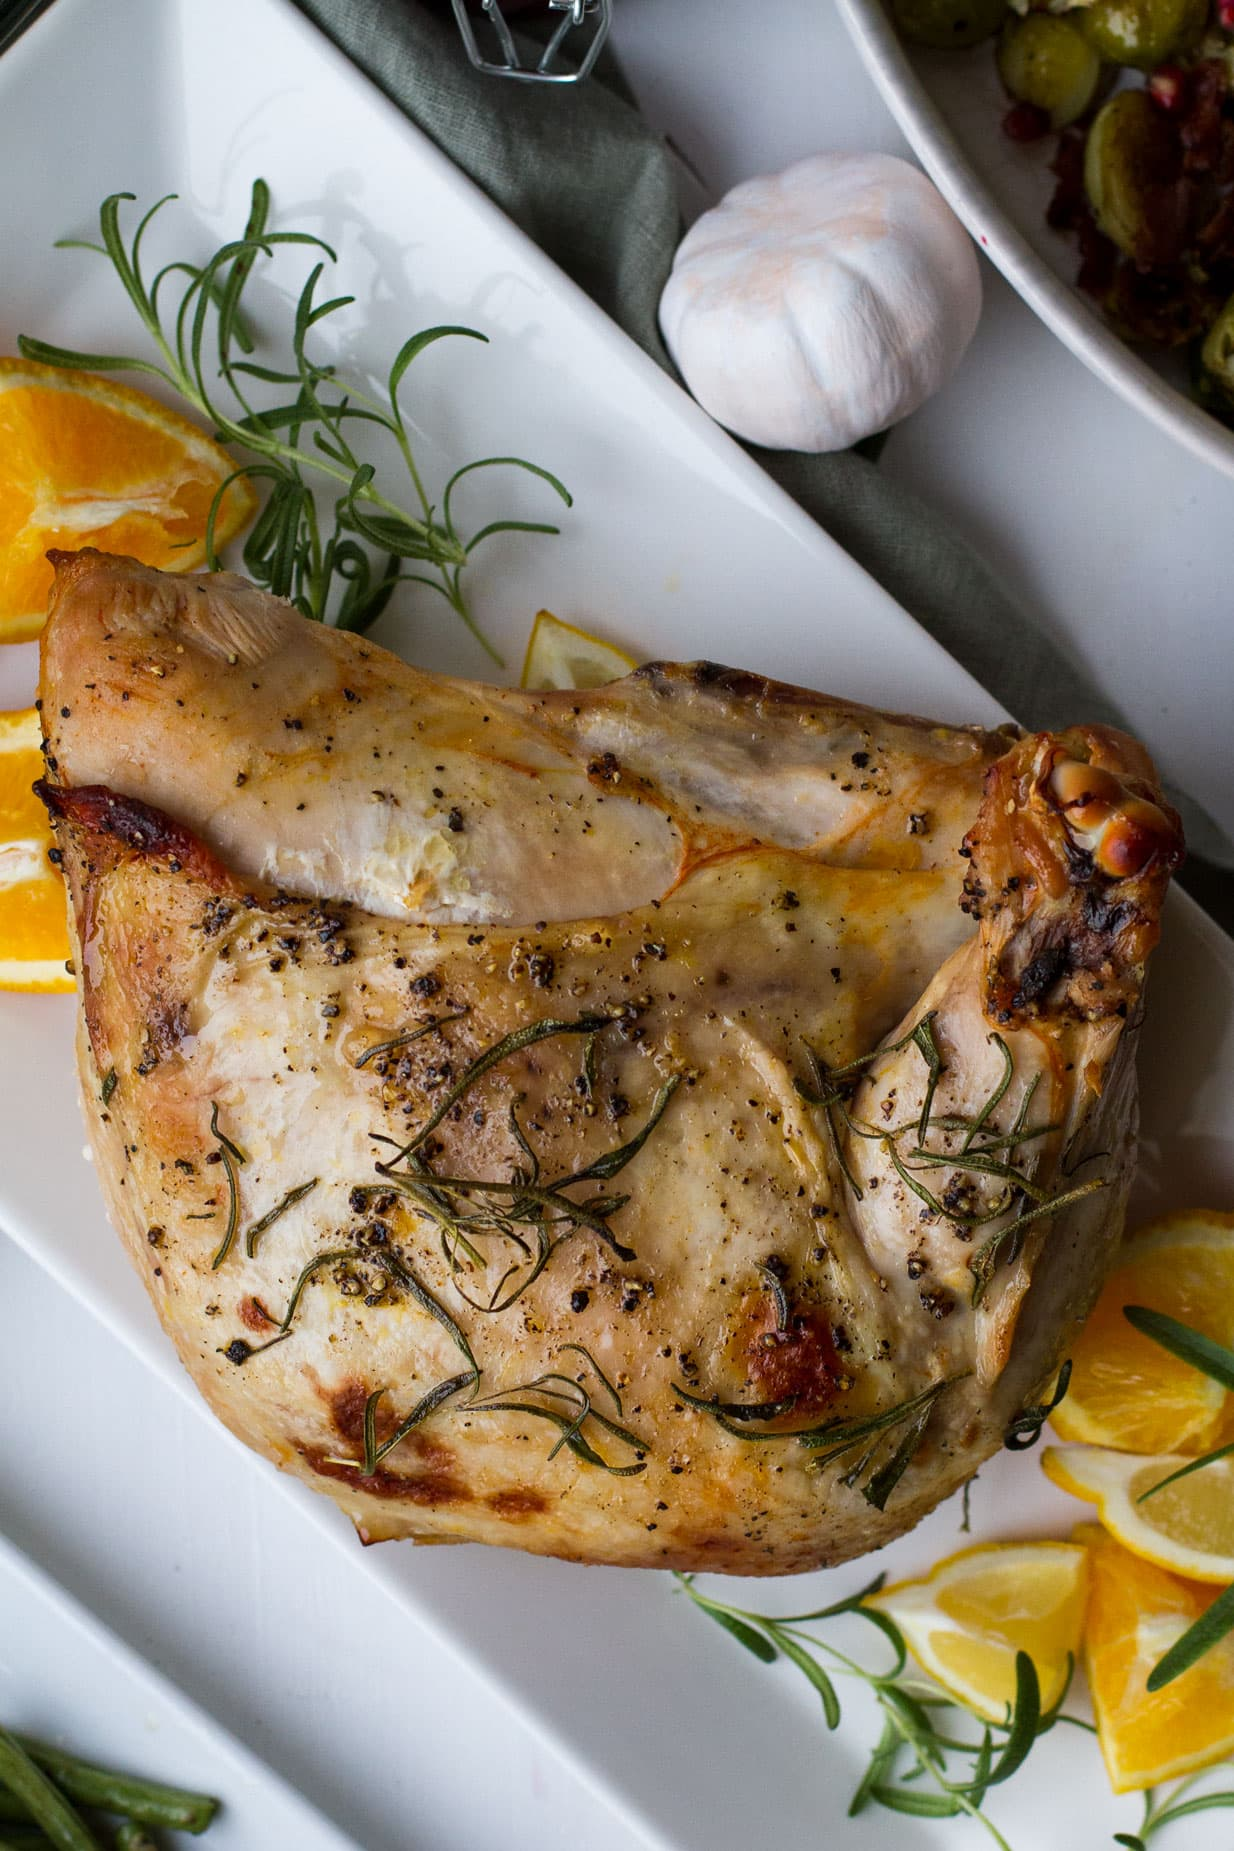 Turkey breast on a plate, garnished with orange quarters and rosemary sprigs.